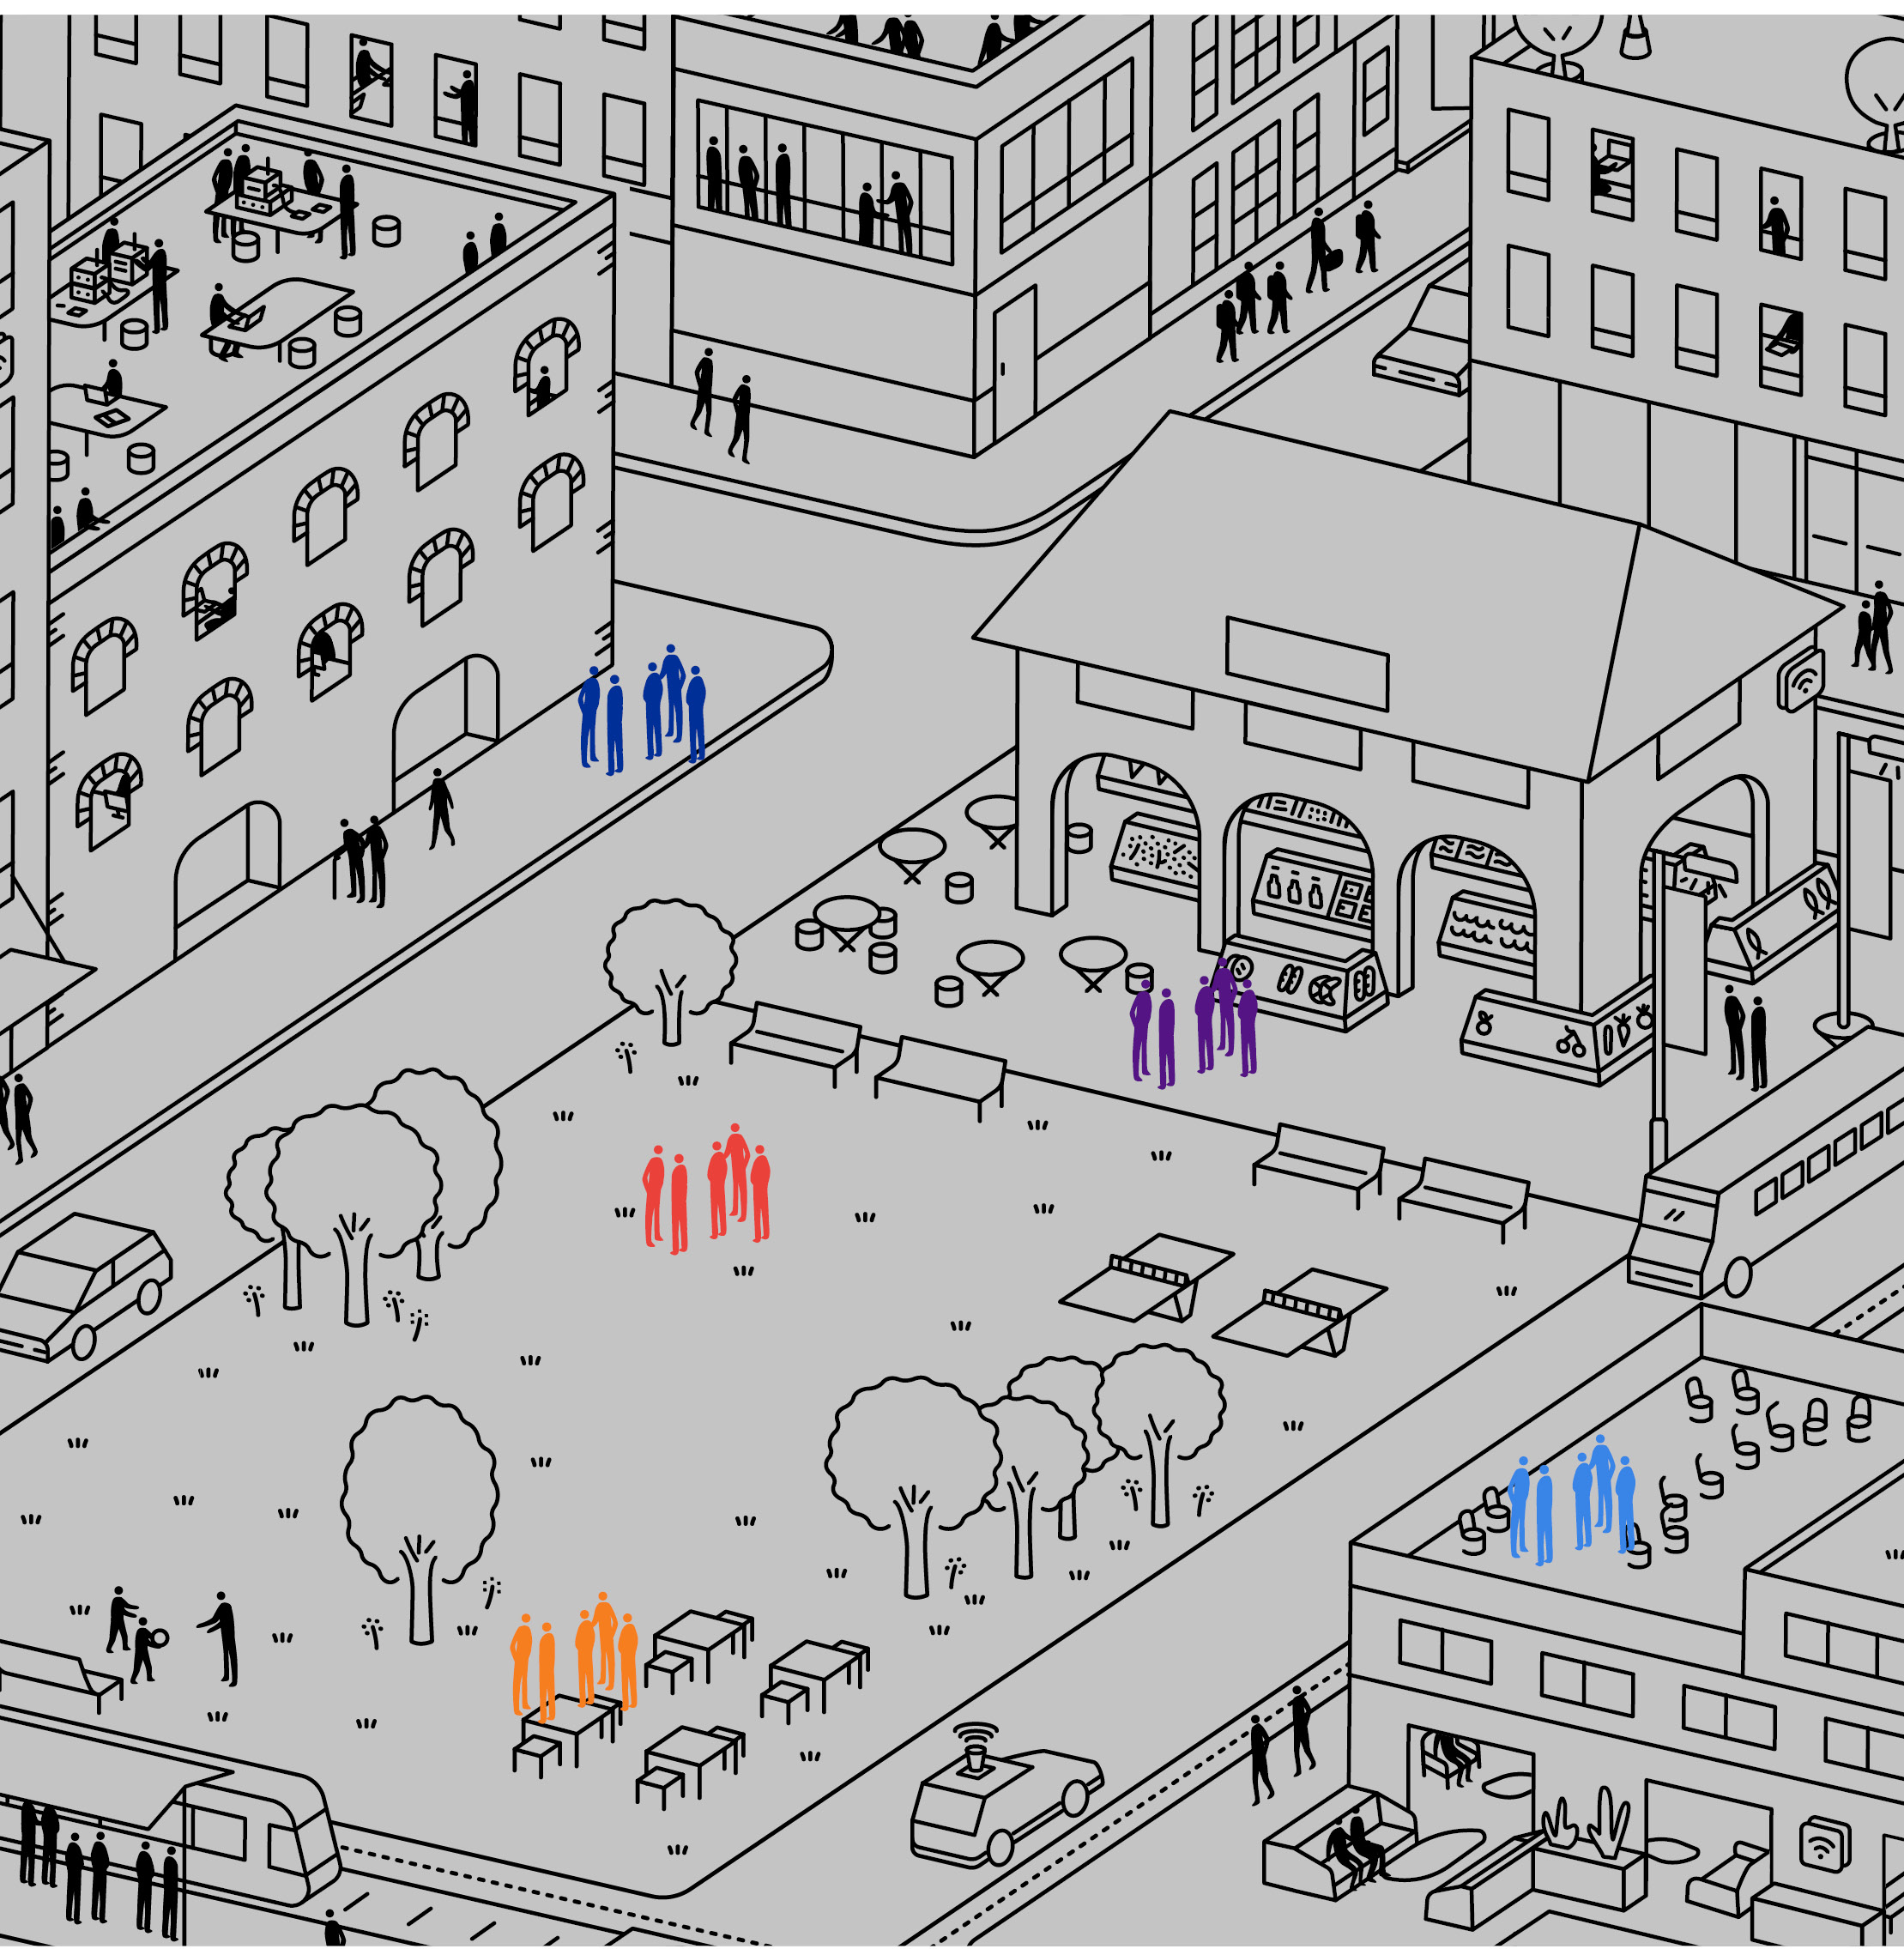 Assessing your innovation district: A how-to guide